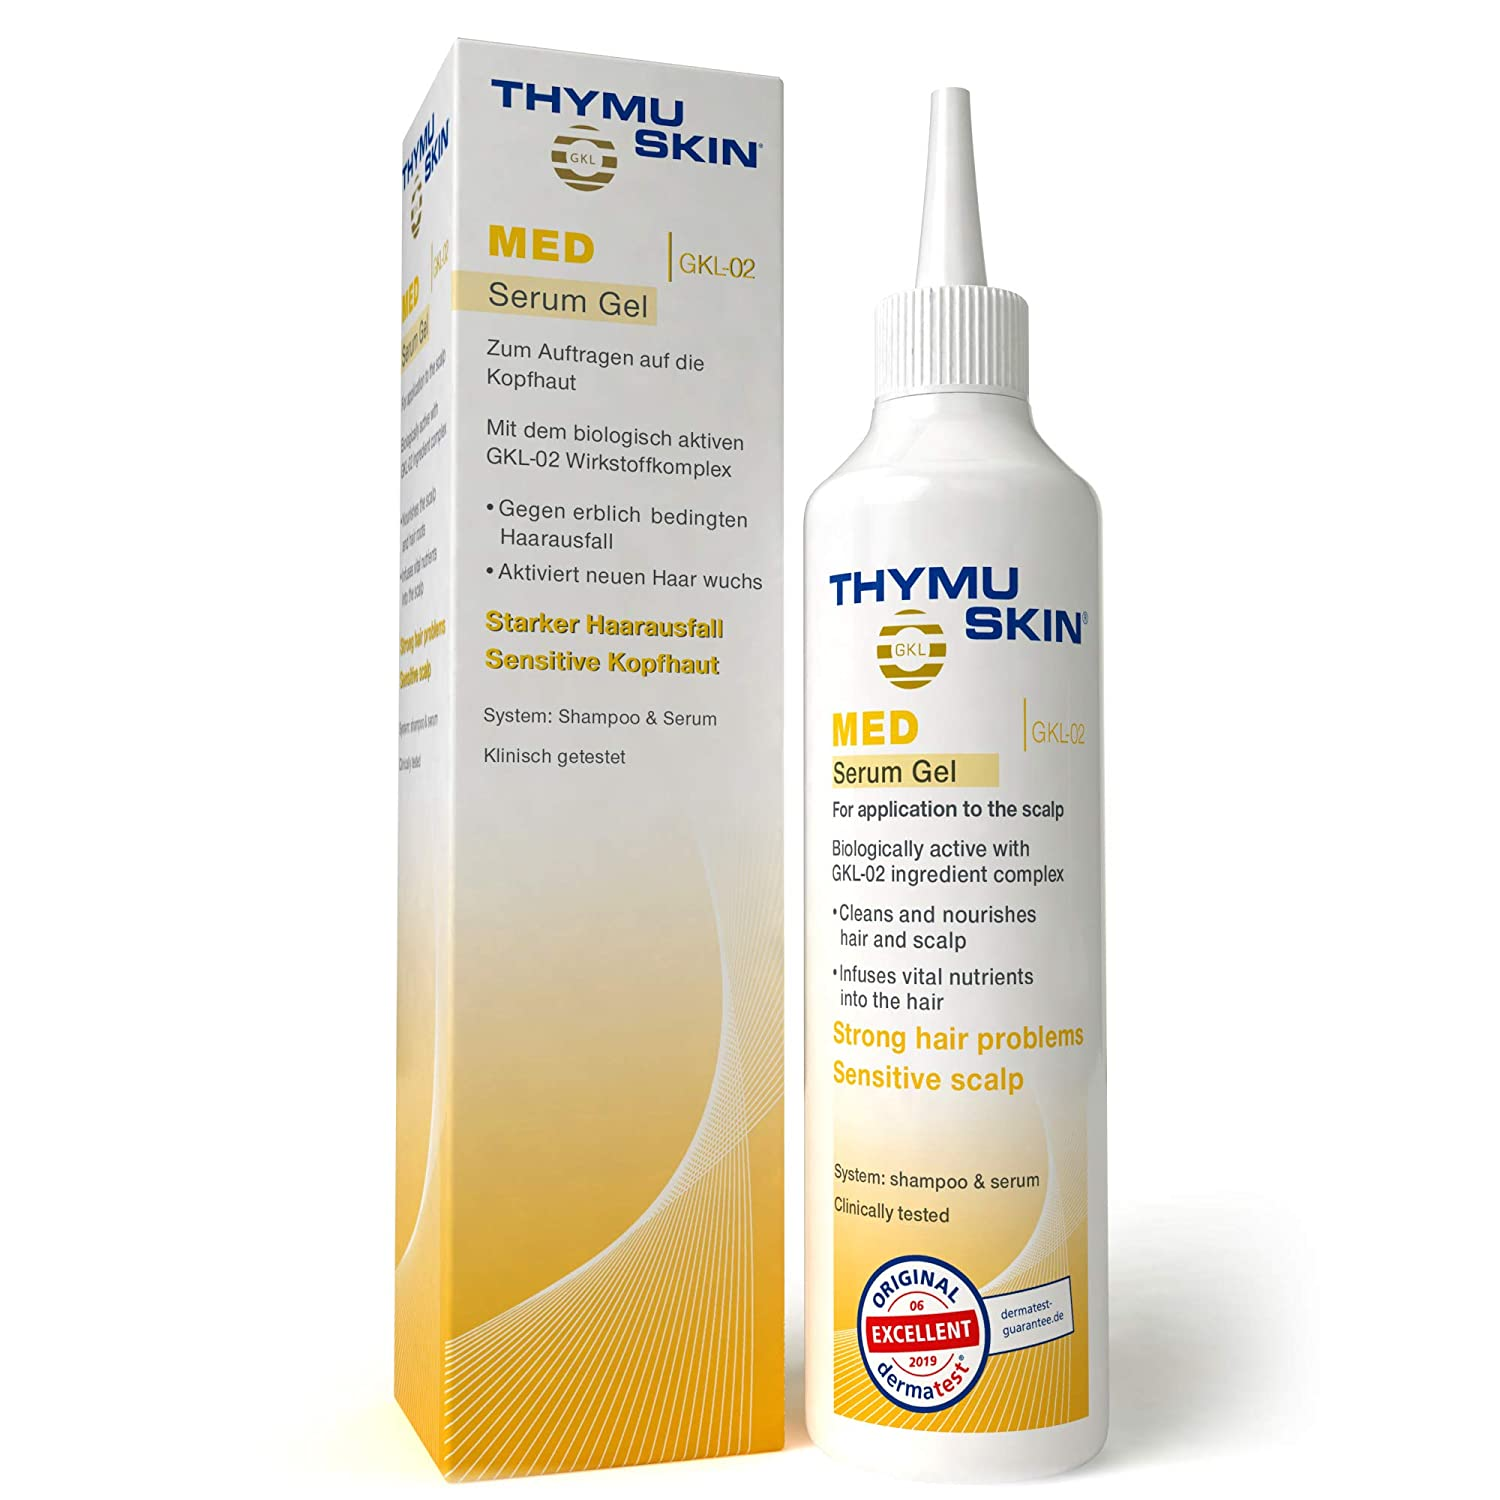 THYMUSKIN Med - Hair Care Peptides Serum (Step #2) for Hair Growth Due to Hair Loss - for Sensitive Hair and Scalp Conditions Where Balding is Already Present